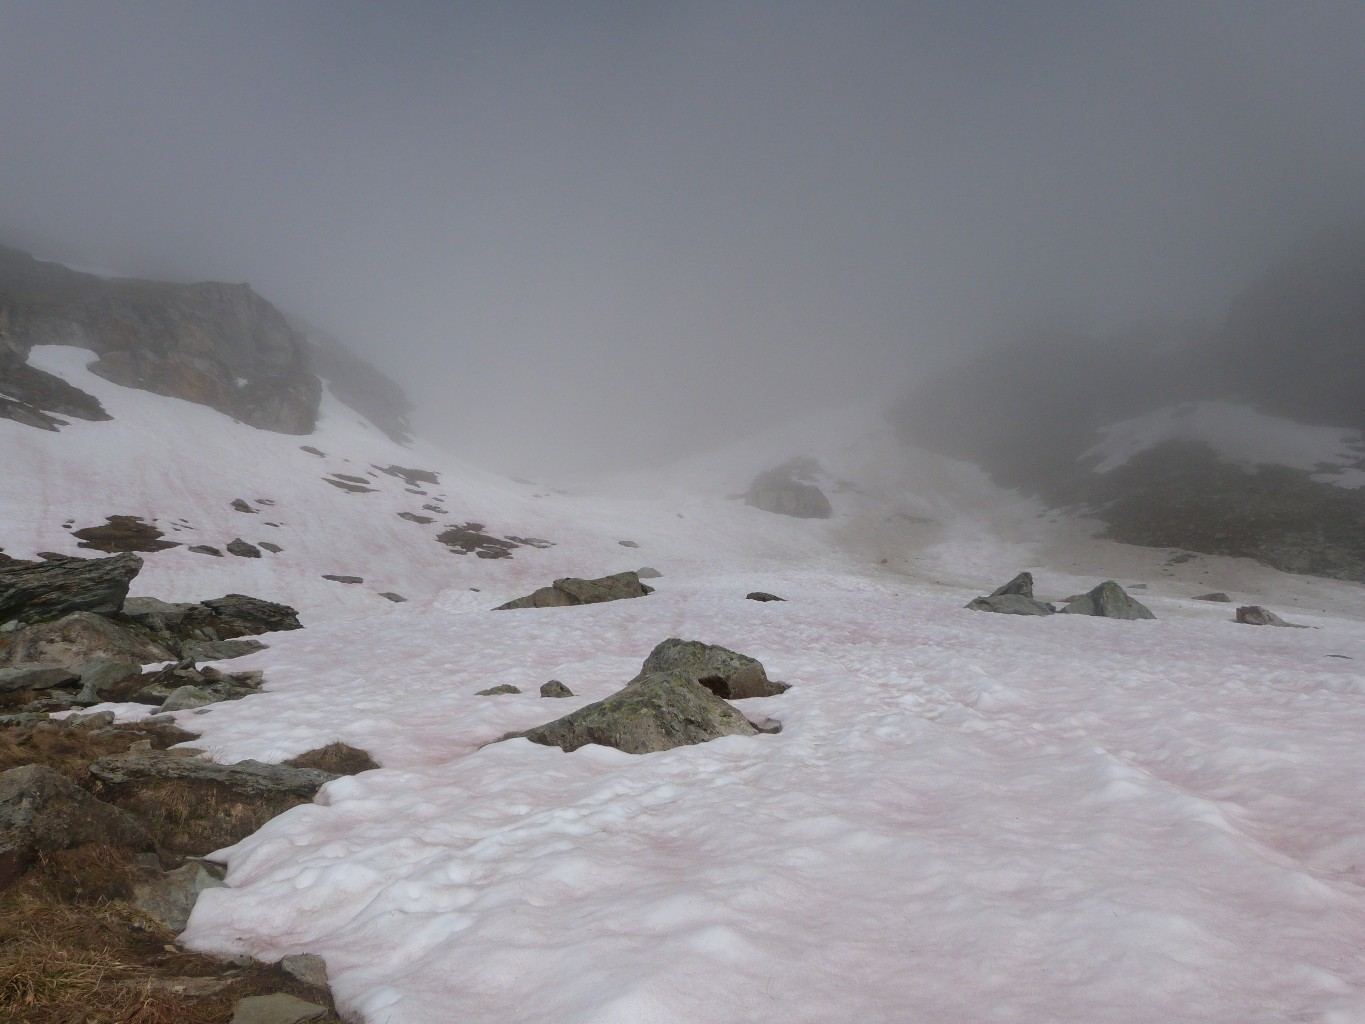 2500m, on chausse les crampons